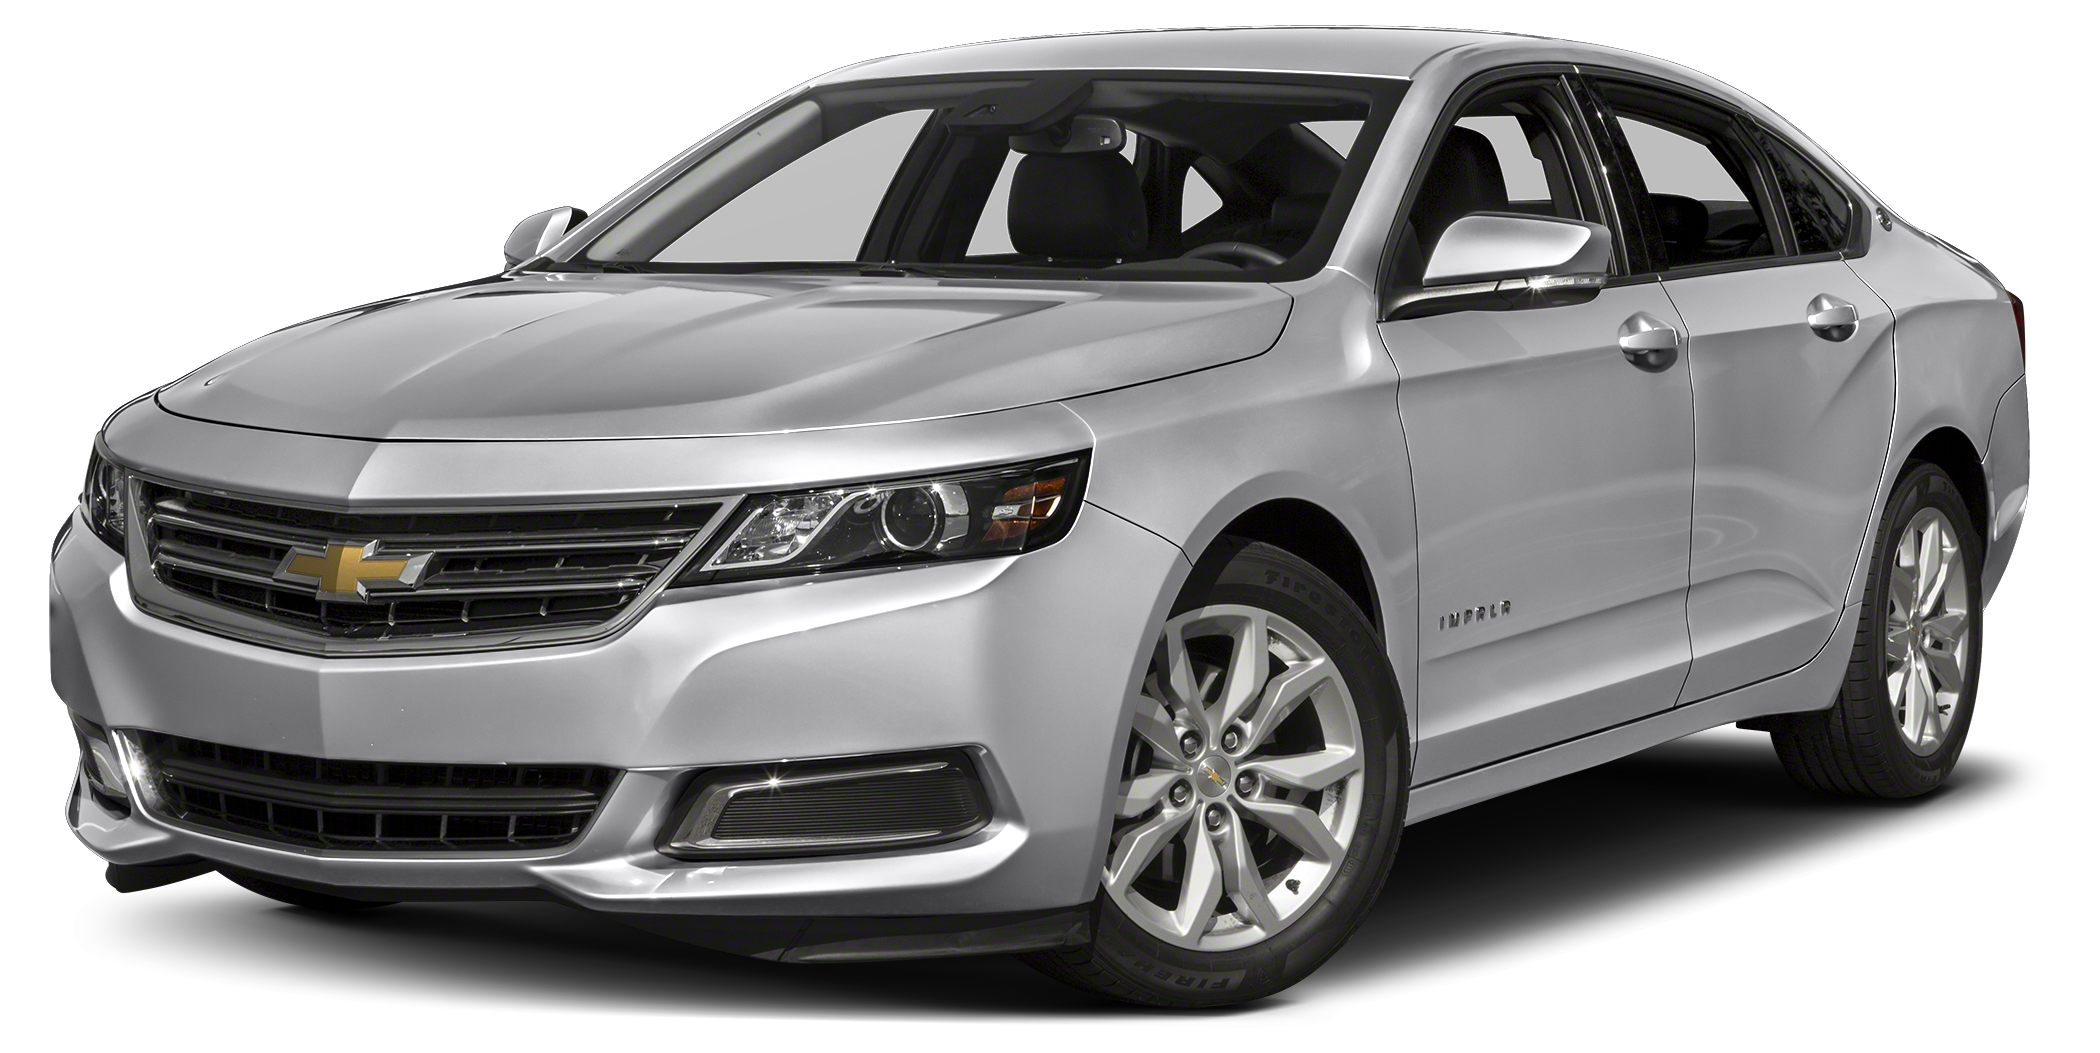 2016 Chevrolet Impala LT w2LT Never worry on the road again with anti-lock brakes traction contr